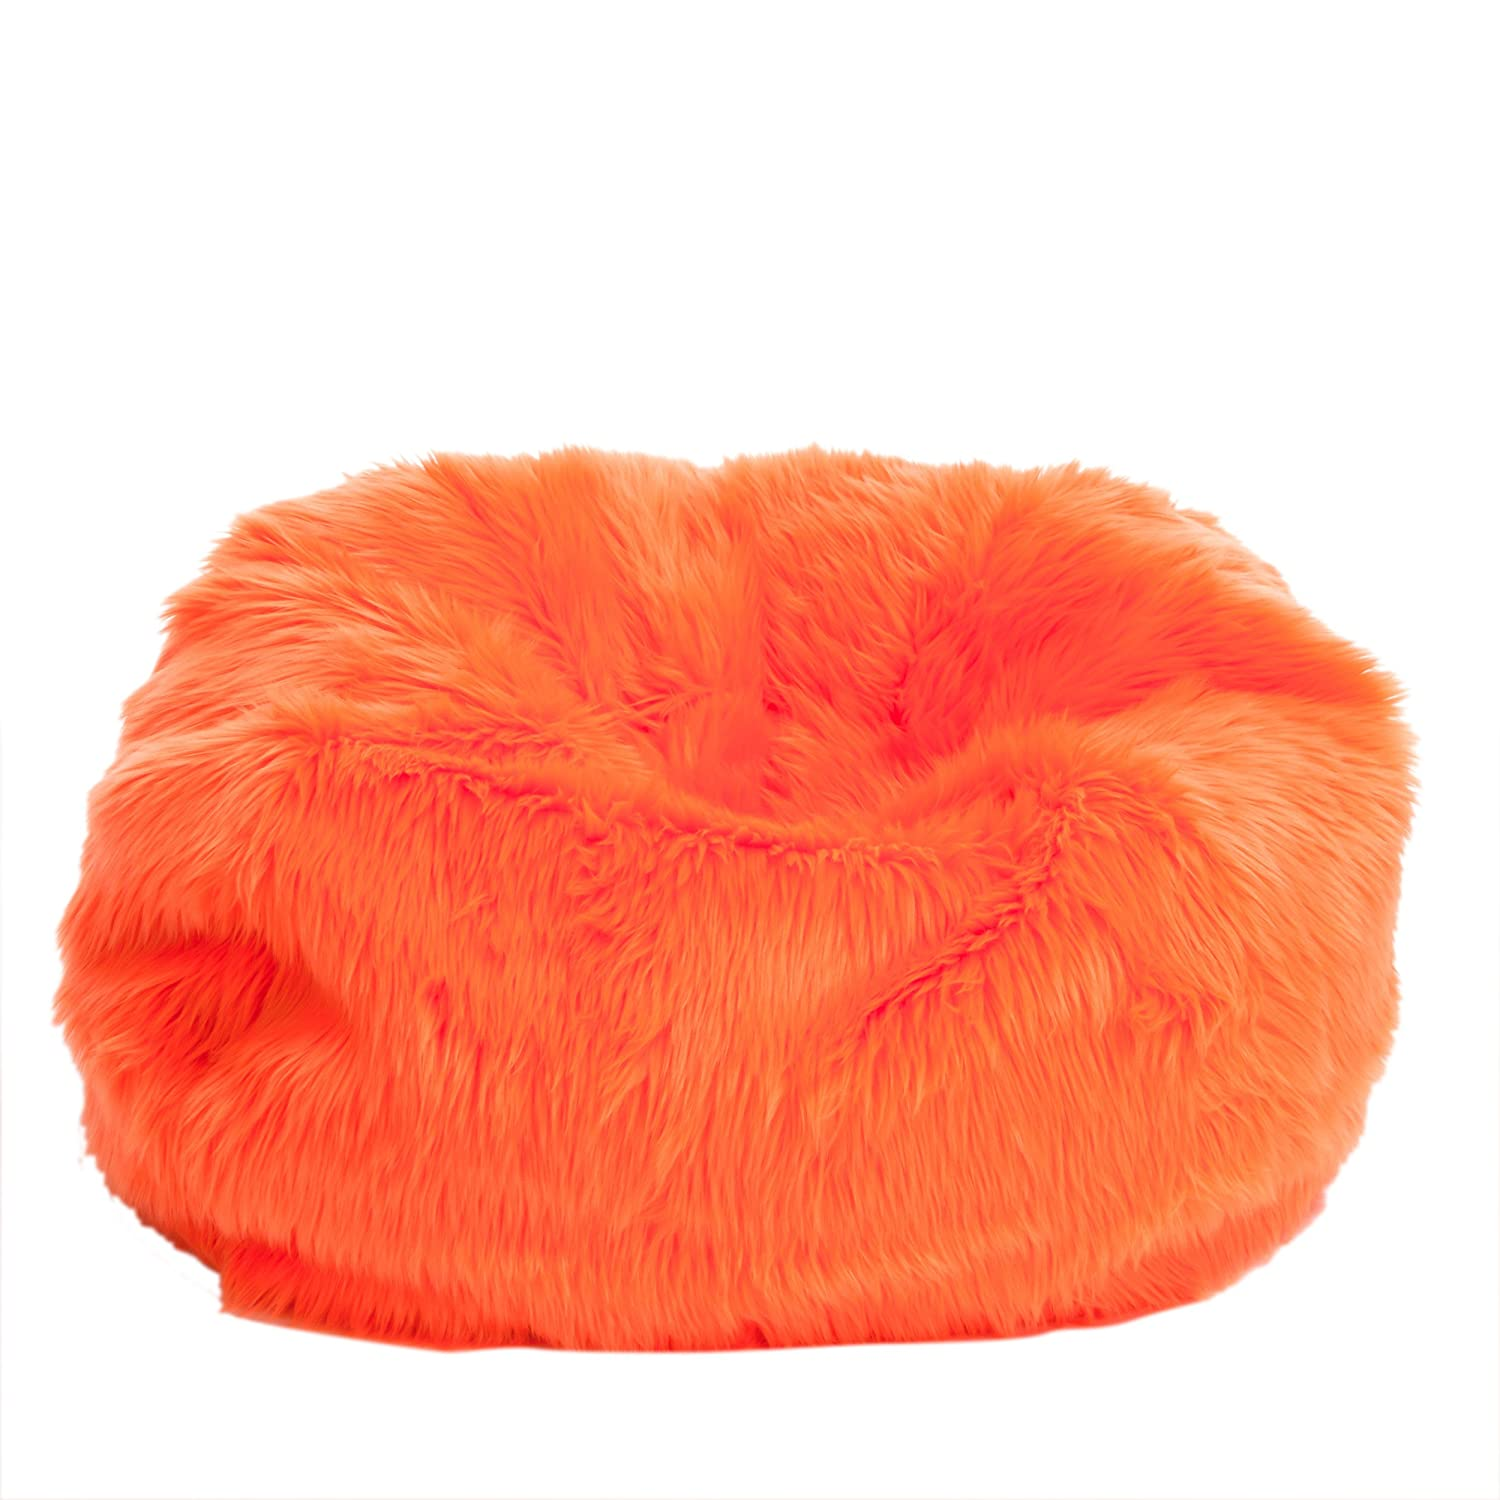 Amazon.com: Le Pouf Fur Bean Bag for Children, Neon Orange: Kitchen & Dining - Amazon.com: Le Pouf Fur Bean Bag For Children, Neon Orange